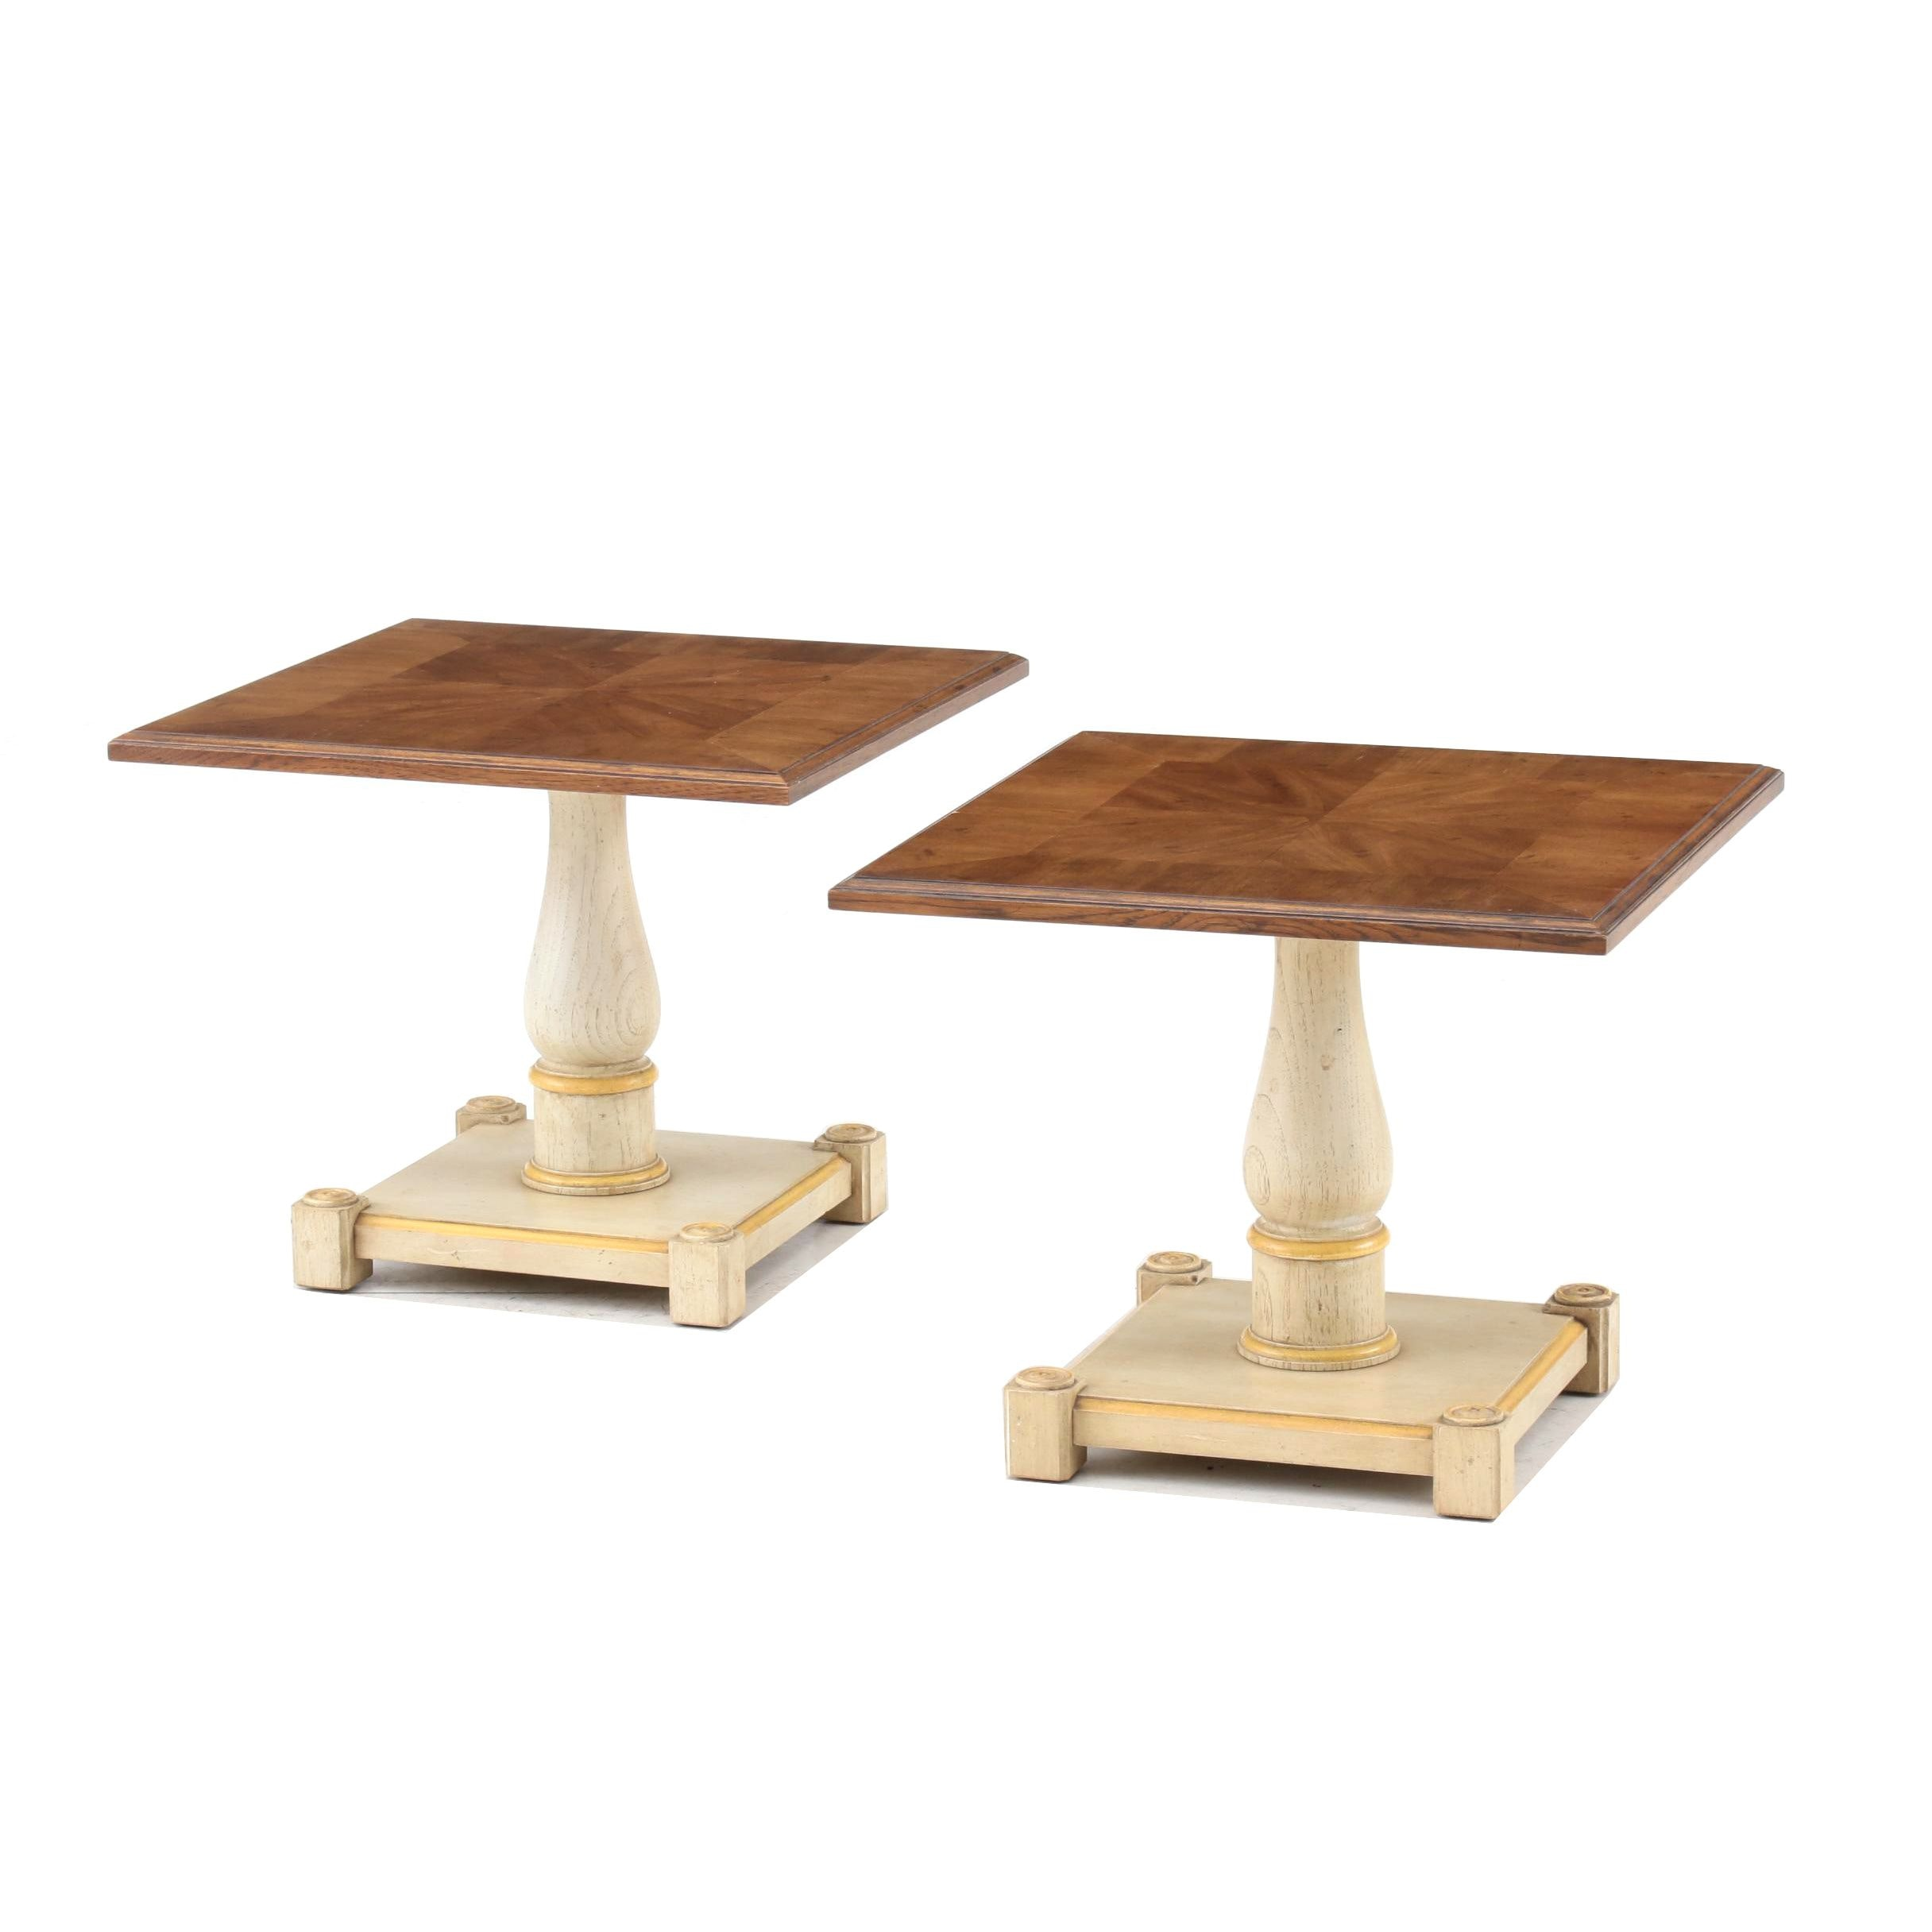 French Provincial Style Painted Wood and Walnut End Tables, Mid-20th Century